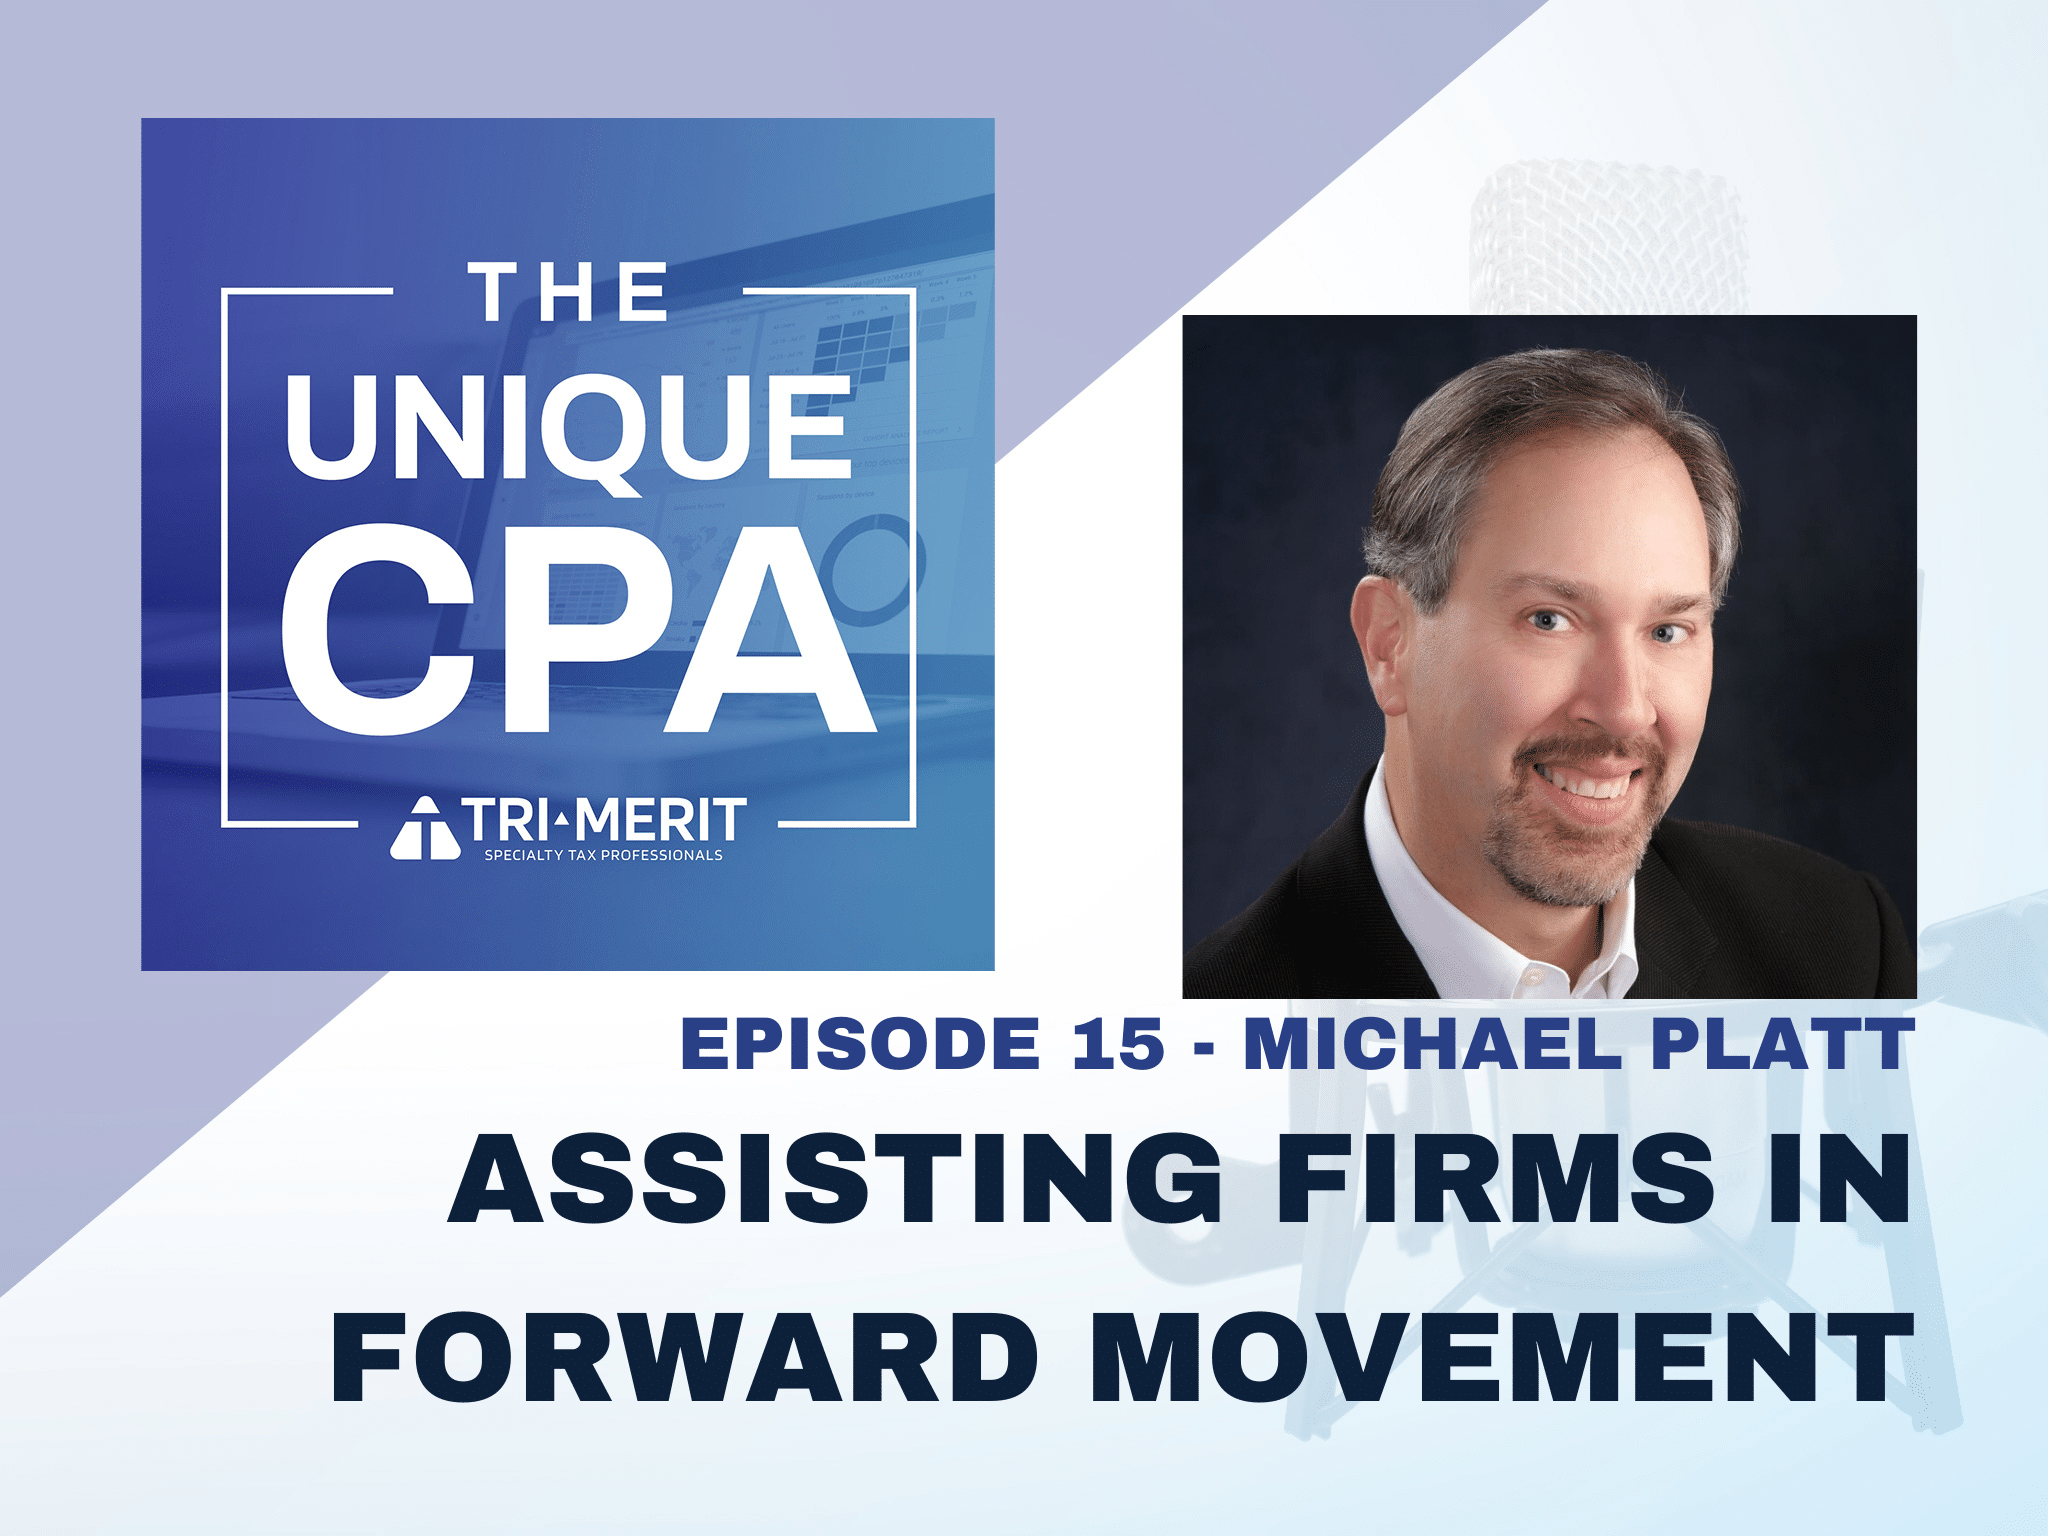 The Unique CPA Feature Image Ep 15 - Assisting Firms in Forward Movement - Tri-Merit